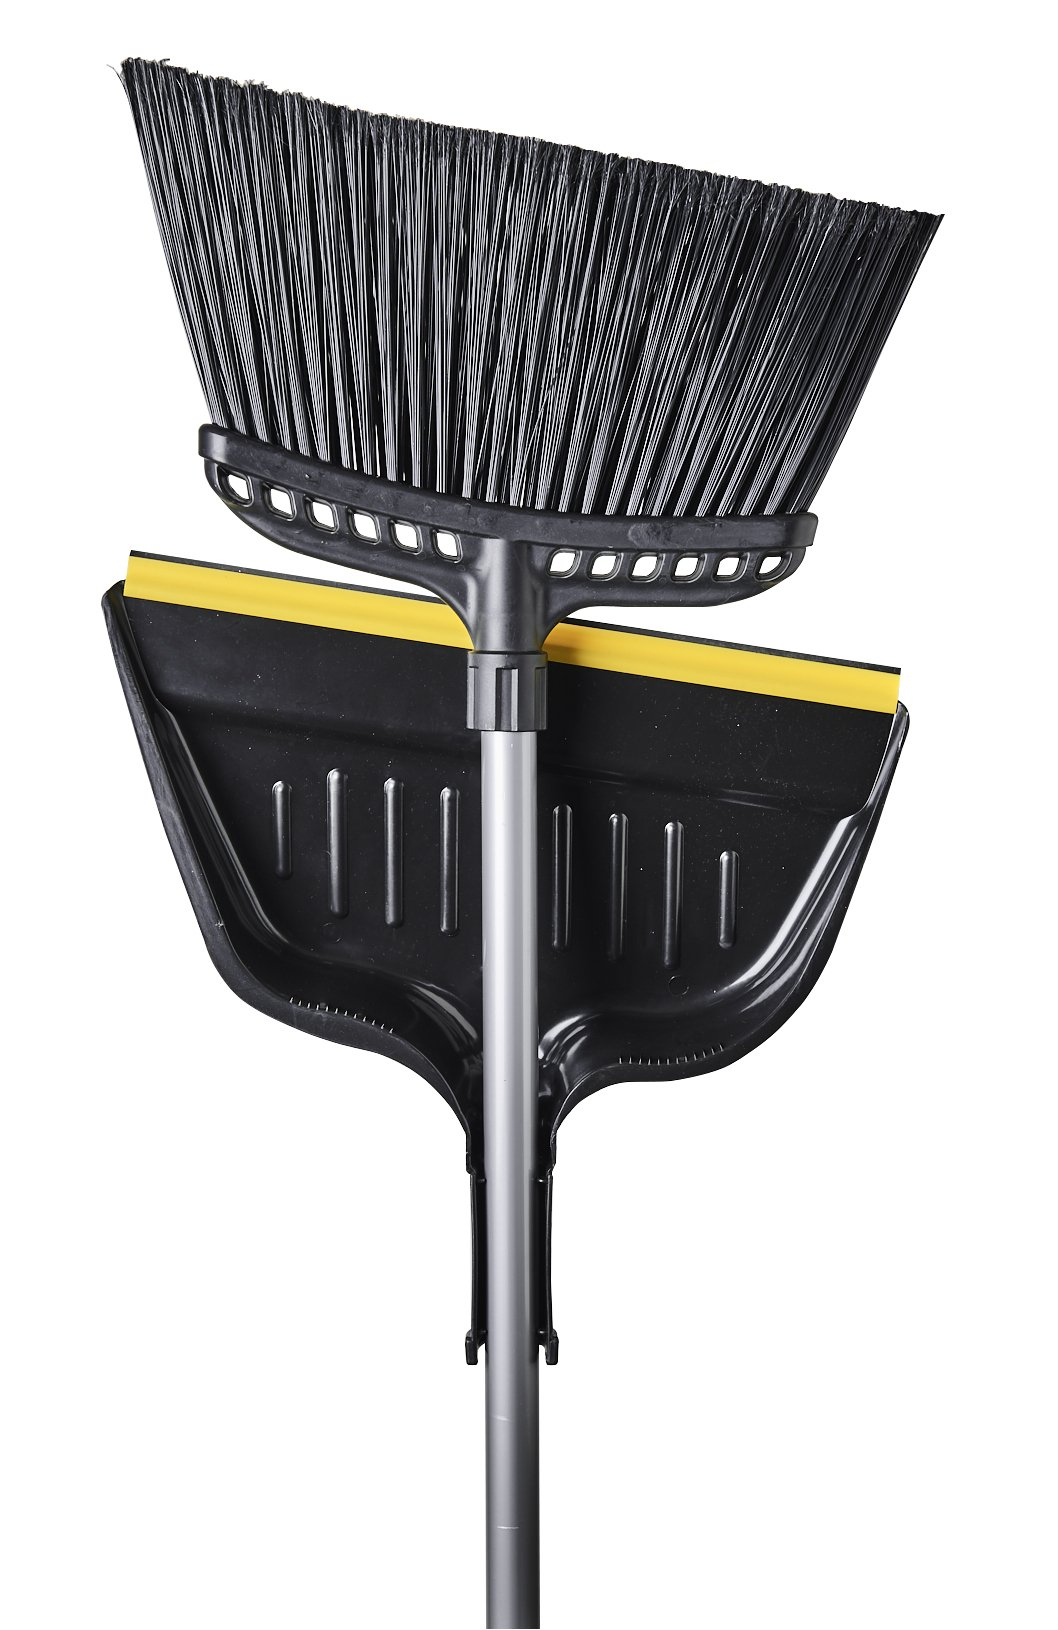 M2 Professional Hercules Heavy-Duty Industrial Angle Broom with Rubber Edge Dust Pan (Pack of 4)